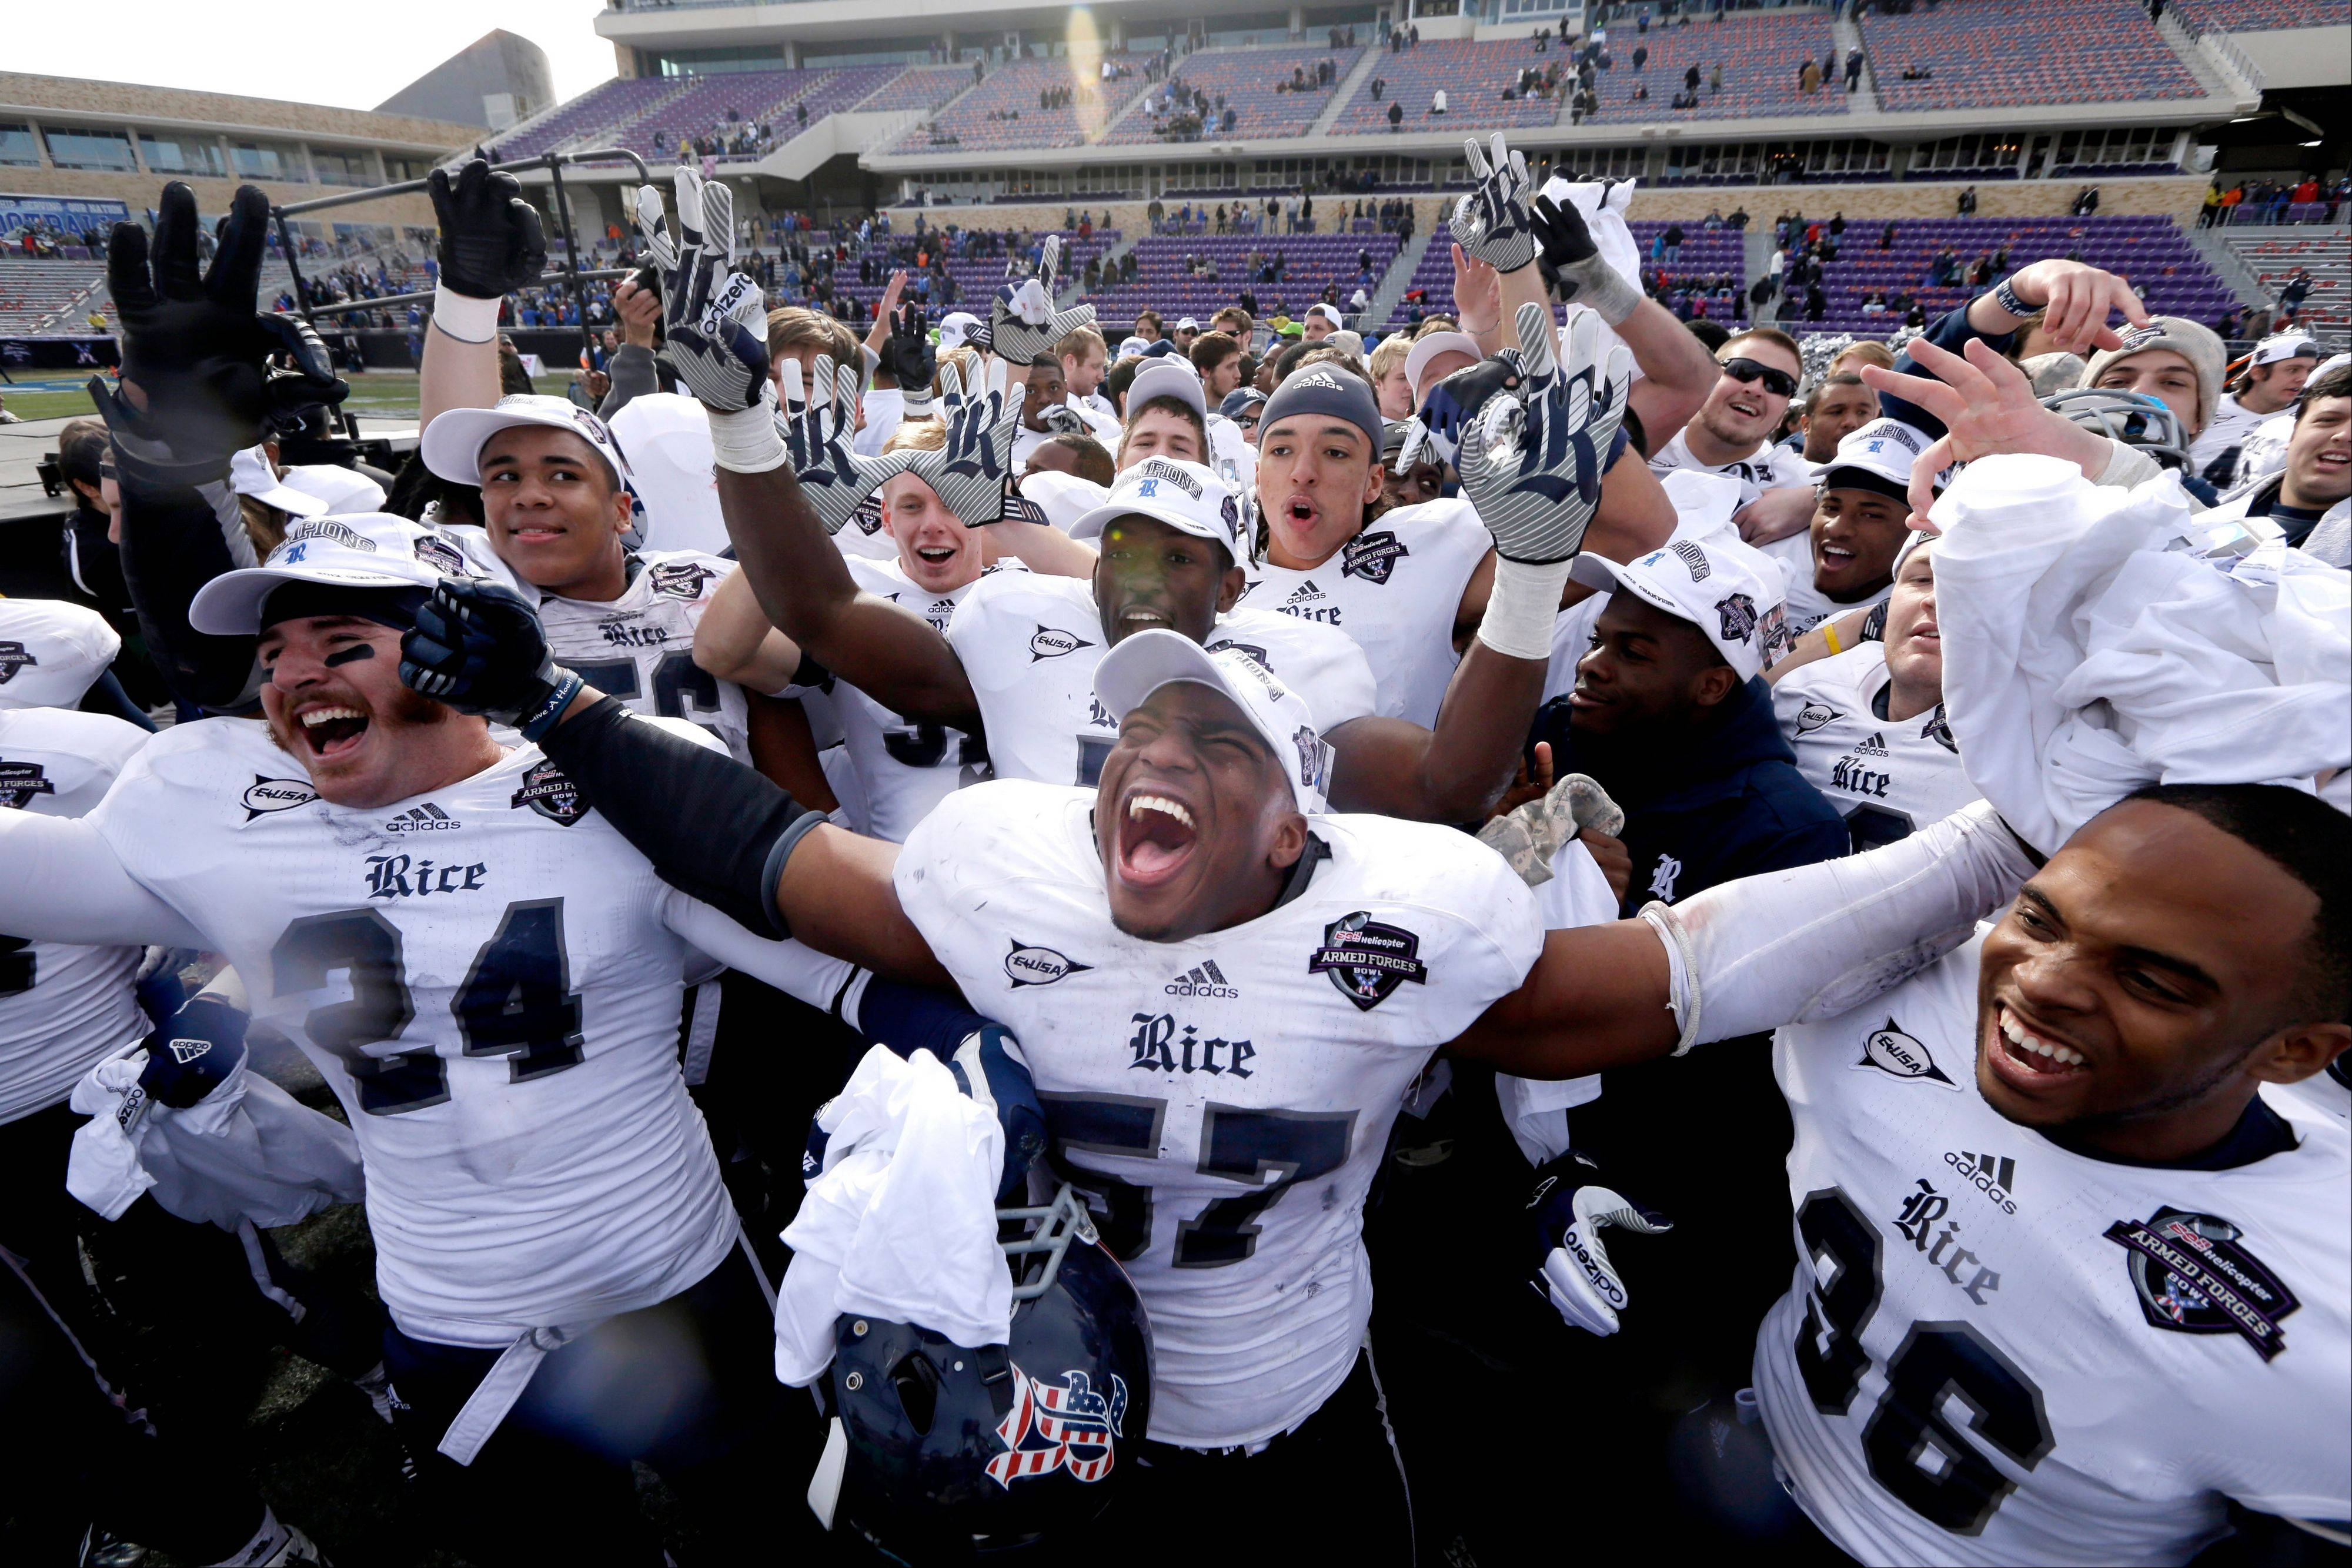 Rice linebacker Cameron Nwosu (57) celebrates with safety Paul Porras (24) and defensive end Dylan Klare (96) Saturday after the Armed Forces Bowl against Air Force in Fort Worth, Texas. Rice won 33-14.